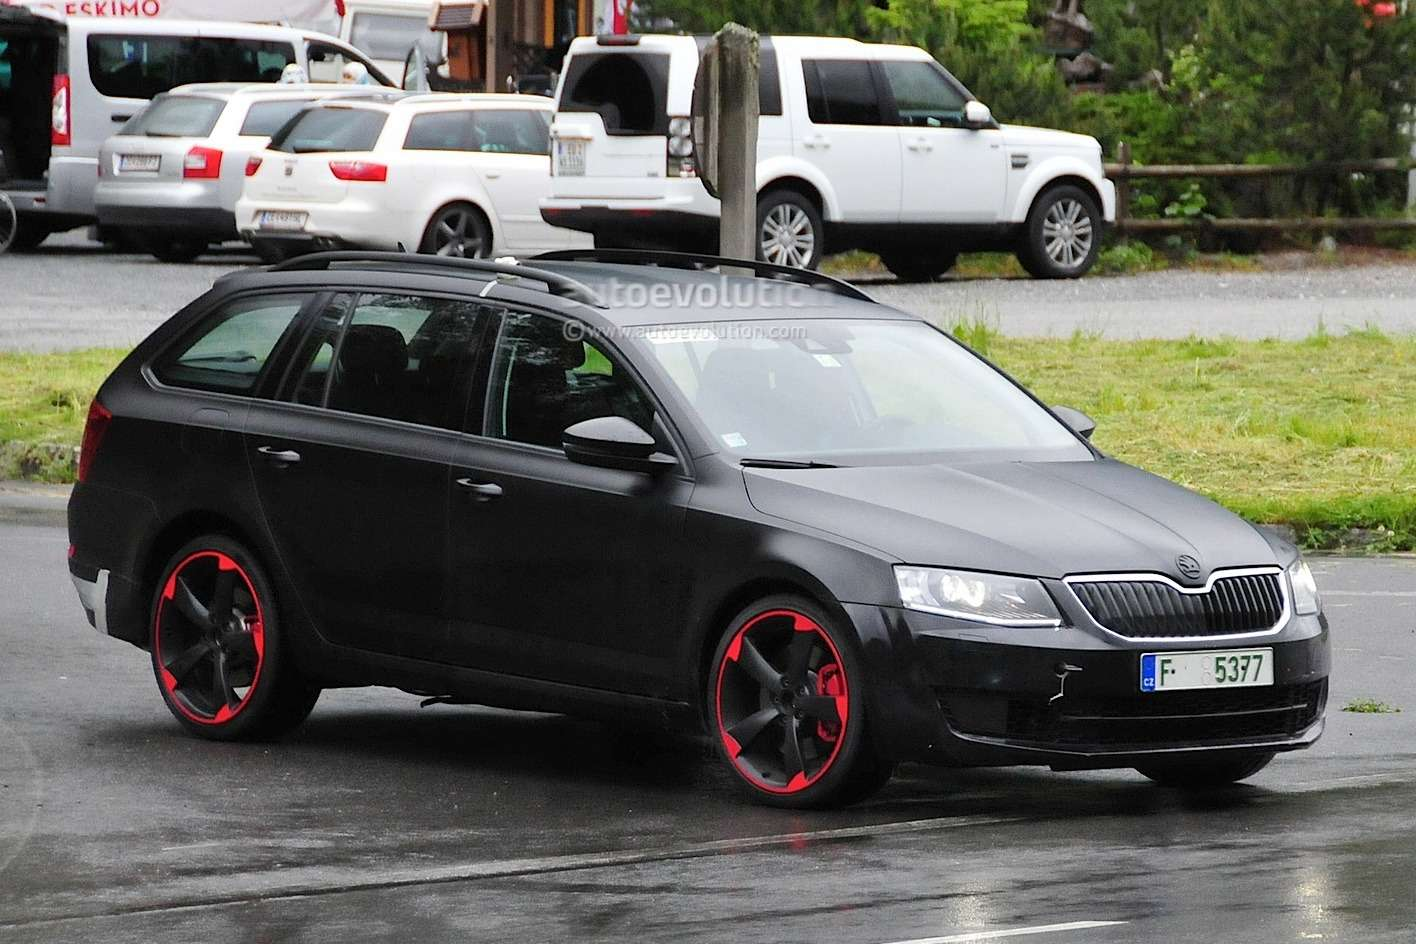 hardcore-skoda-octavia-vrs-with-280-hp-spied-for-the-first-time-photo-gallery_2